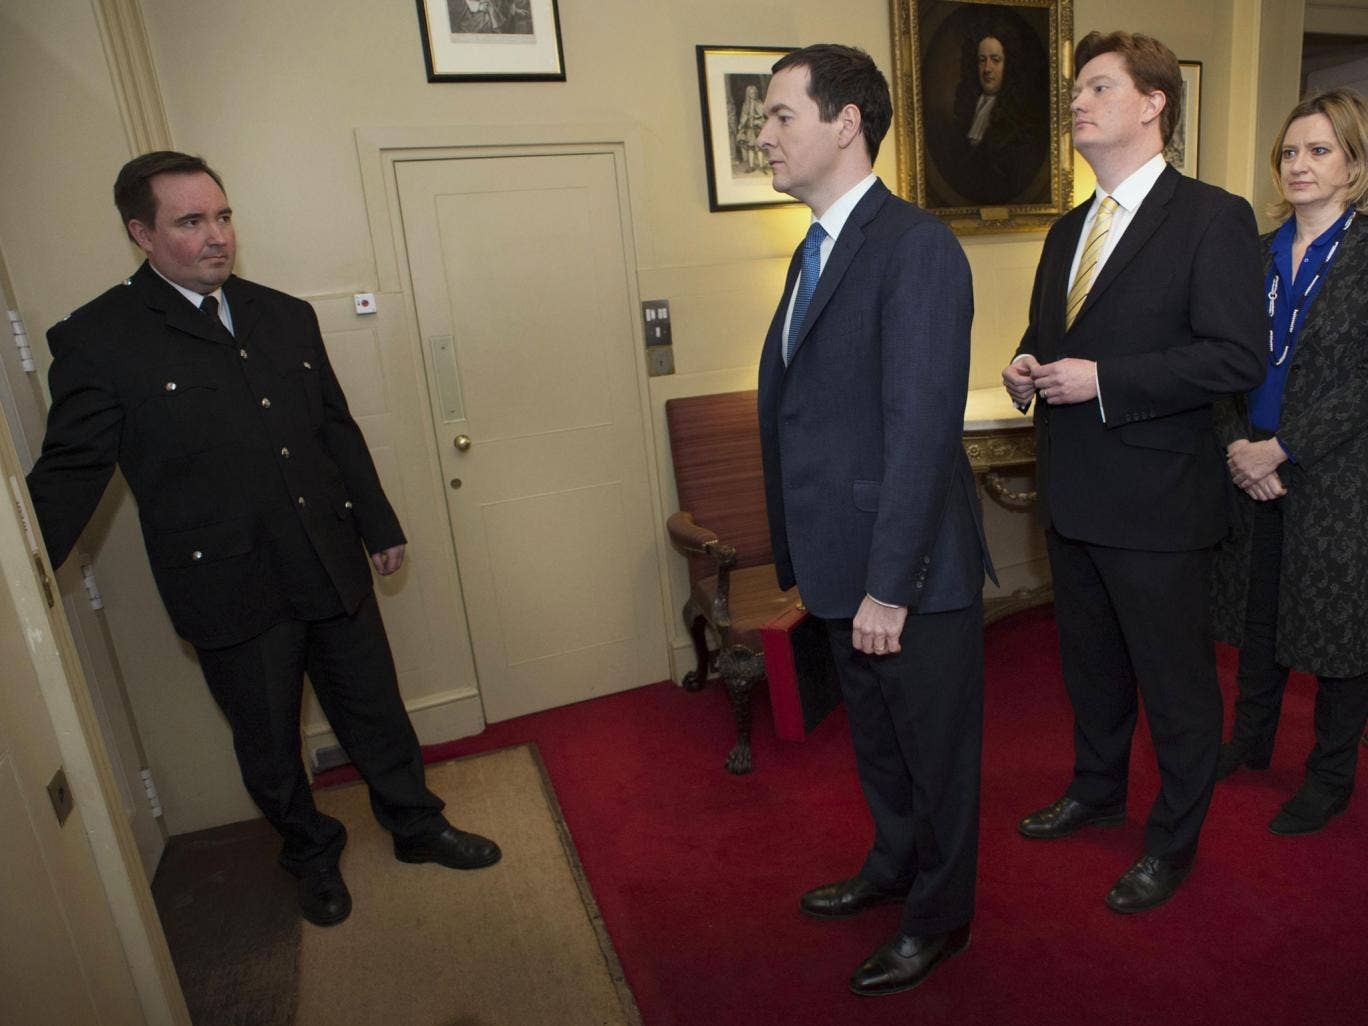 Britain's Chancellor of the Exchequer George Osborne leads his Treasury team as they prepare to leave number 11 Downing Street to pose for photographers before going to the House of Commons to present the Budget